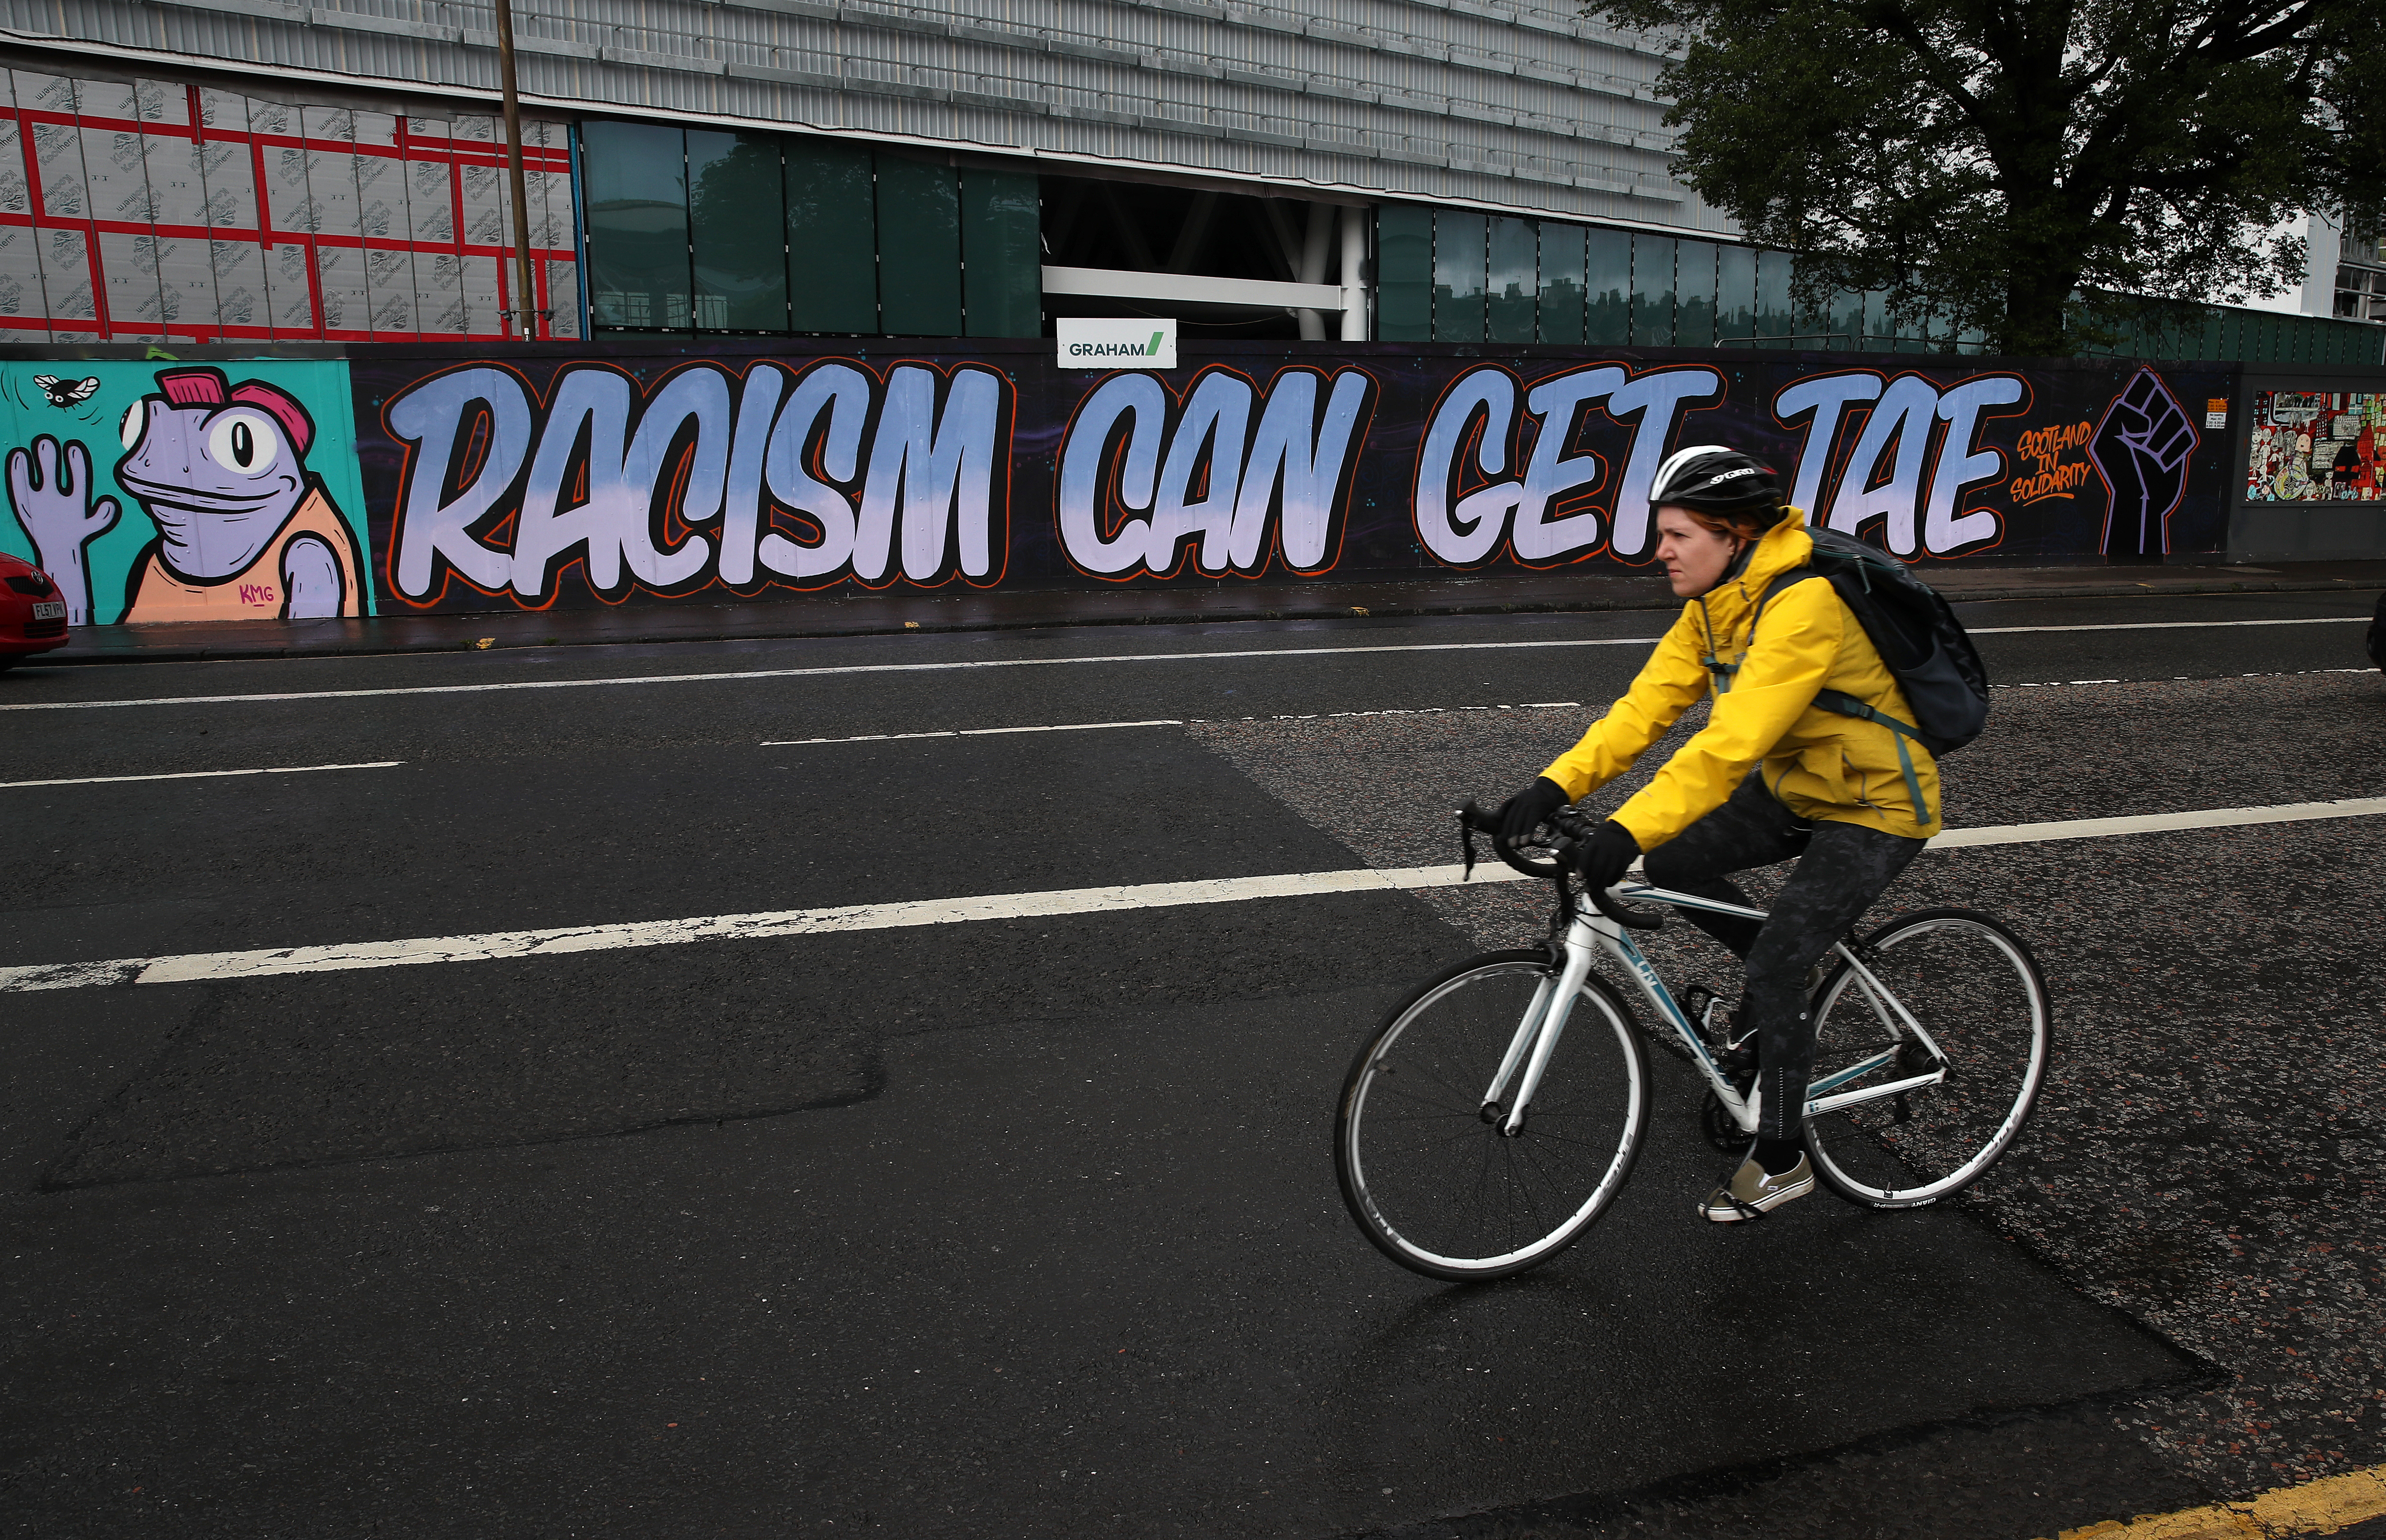 A cyclist passes graffiti in Edinburgh following a raft of Black Lives Matter protests took place across the UK over the weekend. The protests were sparked by the death of George Floyd, who was killed on May 25 while in police custody in the US city of Minneapolis.